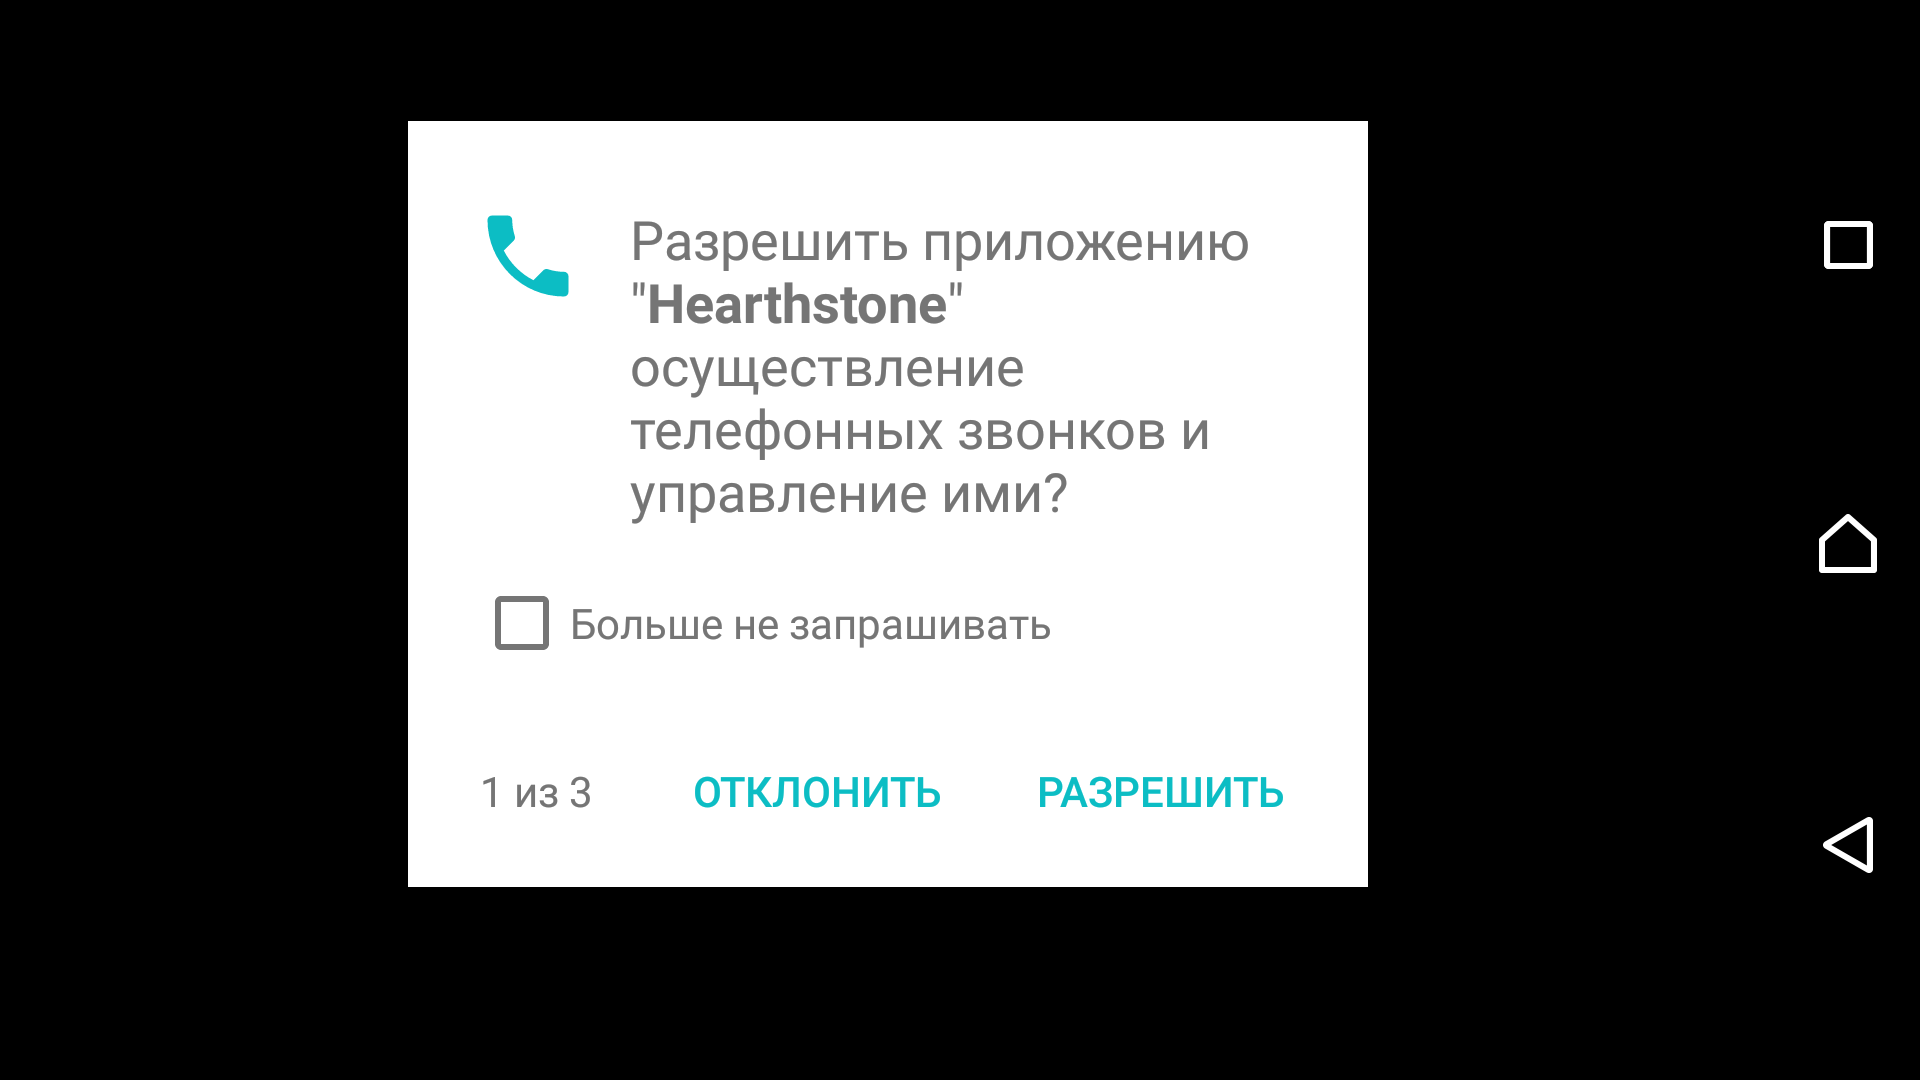 app-permissions-request-ru.png